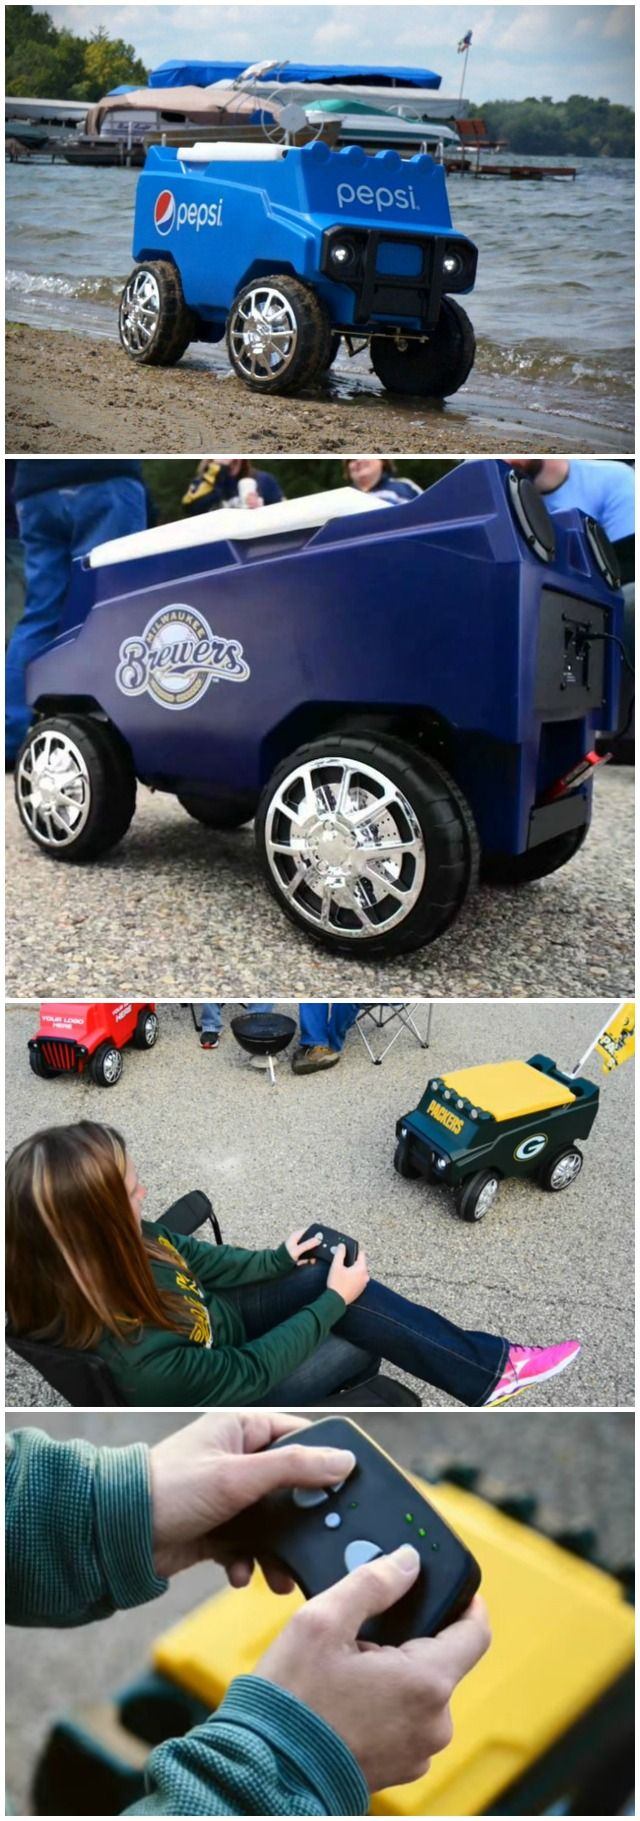 Let the fun begin with your remote control, C3 Rover Cooler. Be the envy of your friends as you deliver cold beverages and hot music.